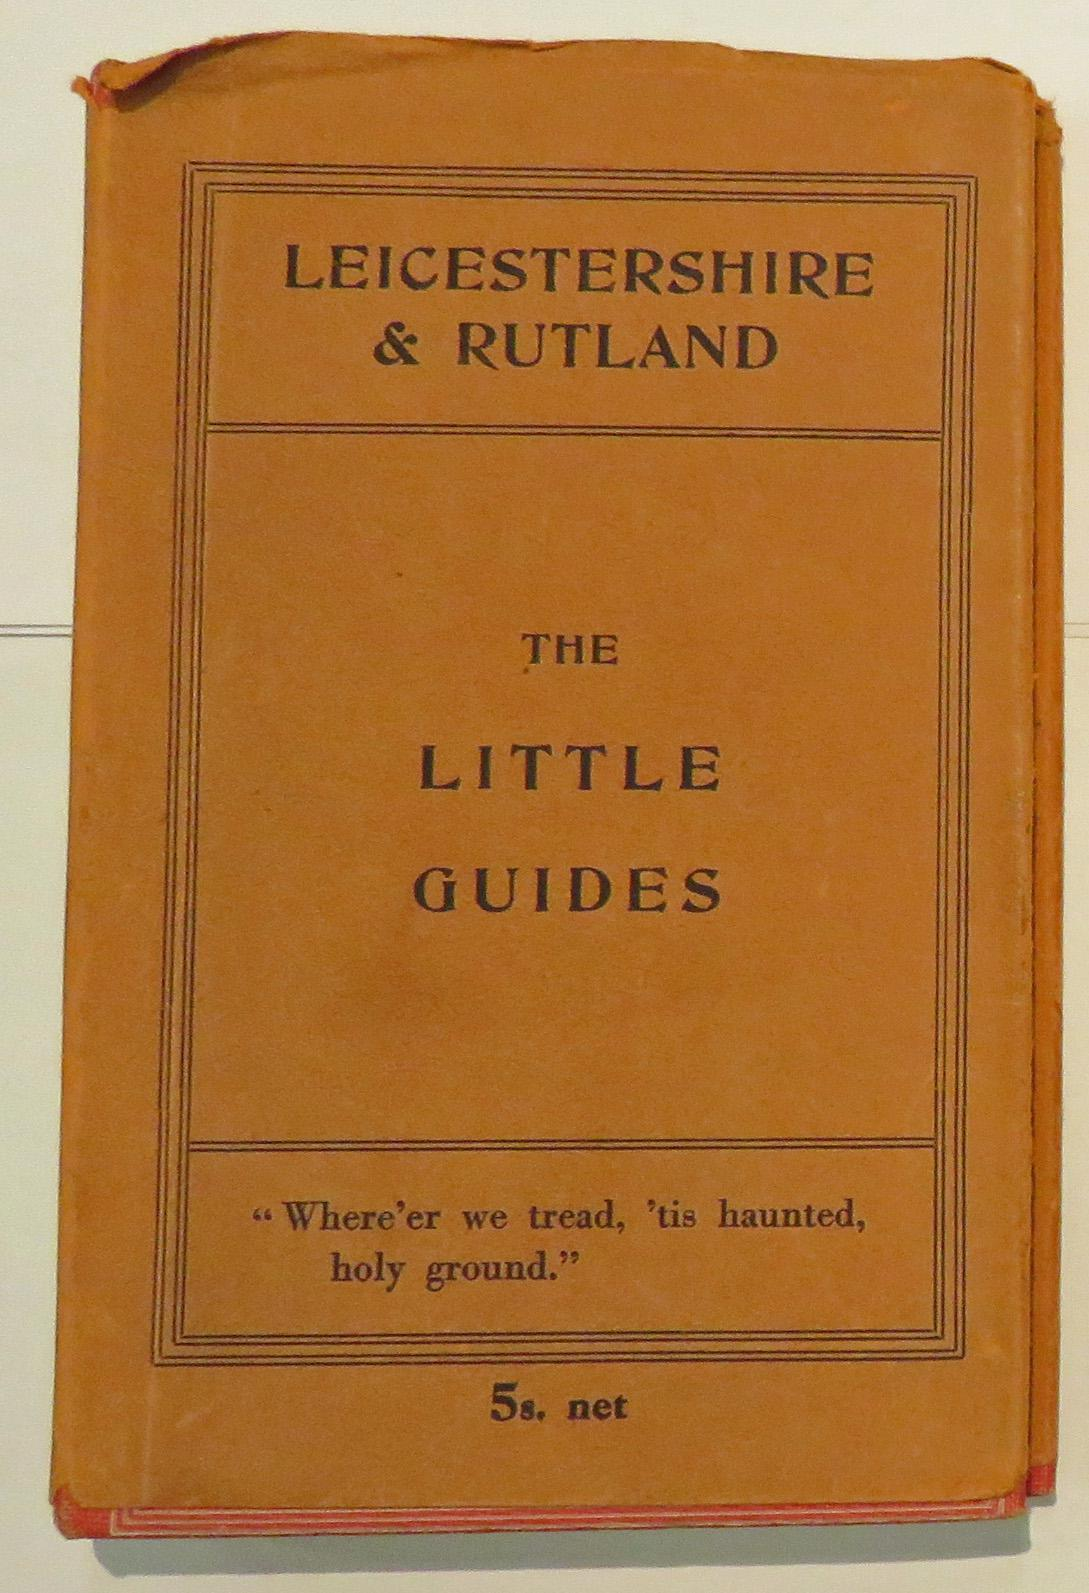 Leicestershire & Rutland The Little Guides